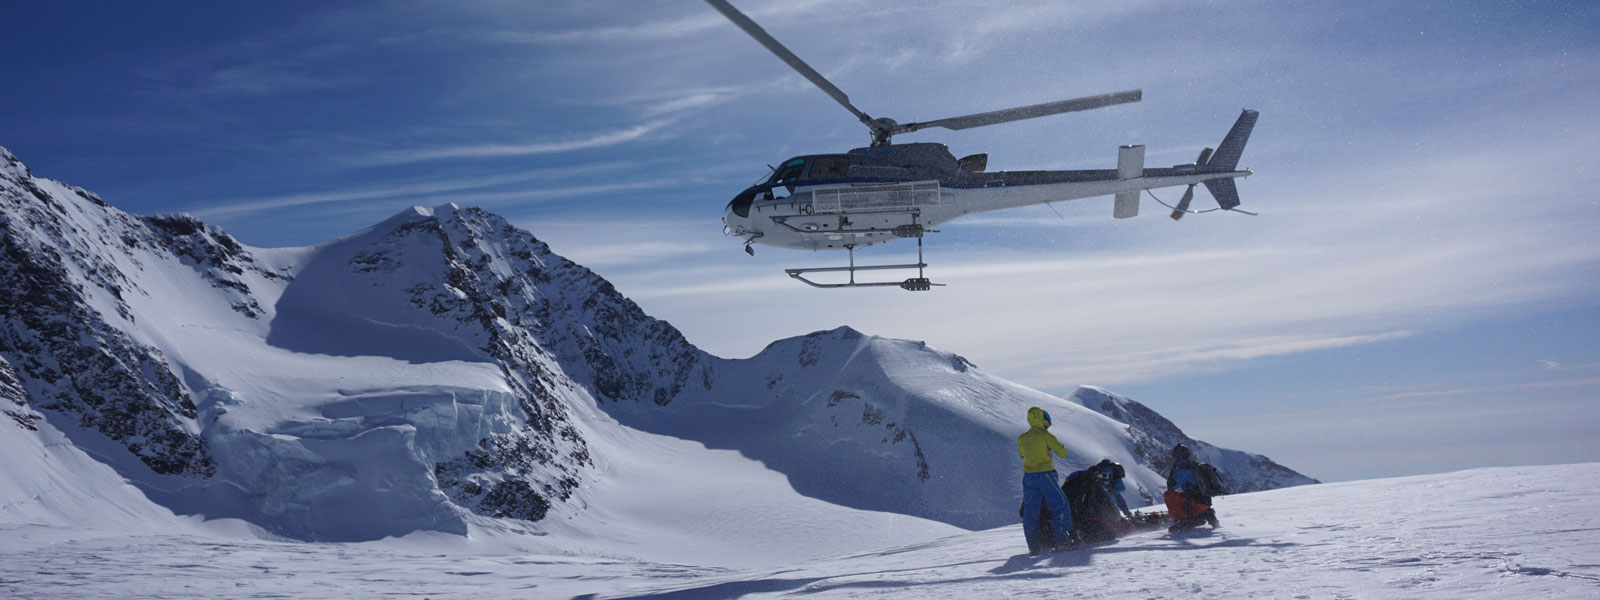 Gressoney Freerid & Heliski